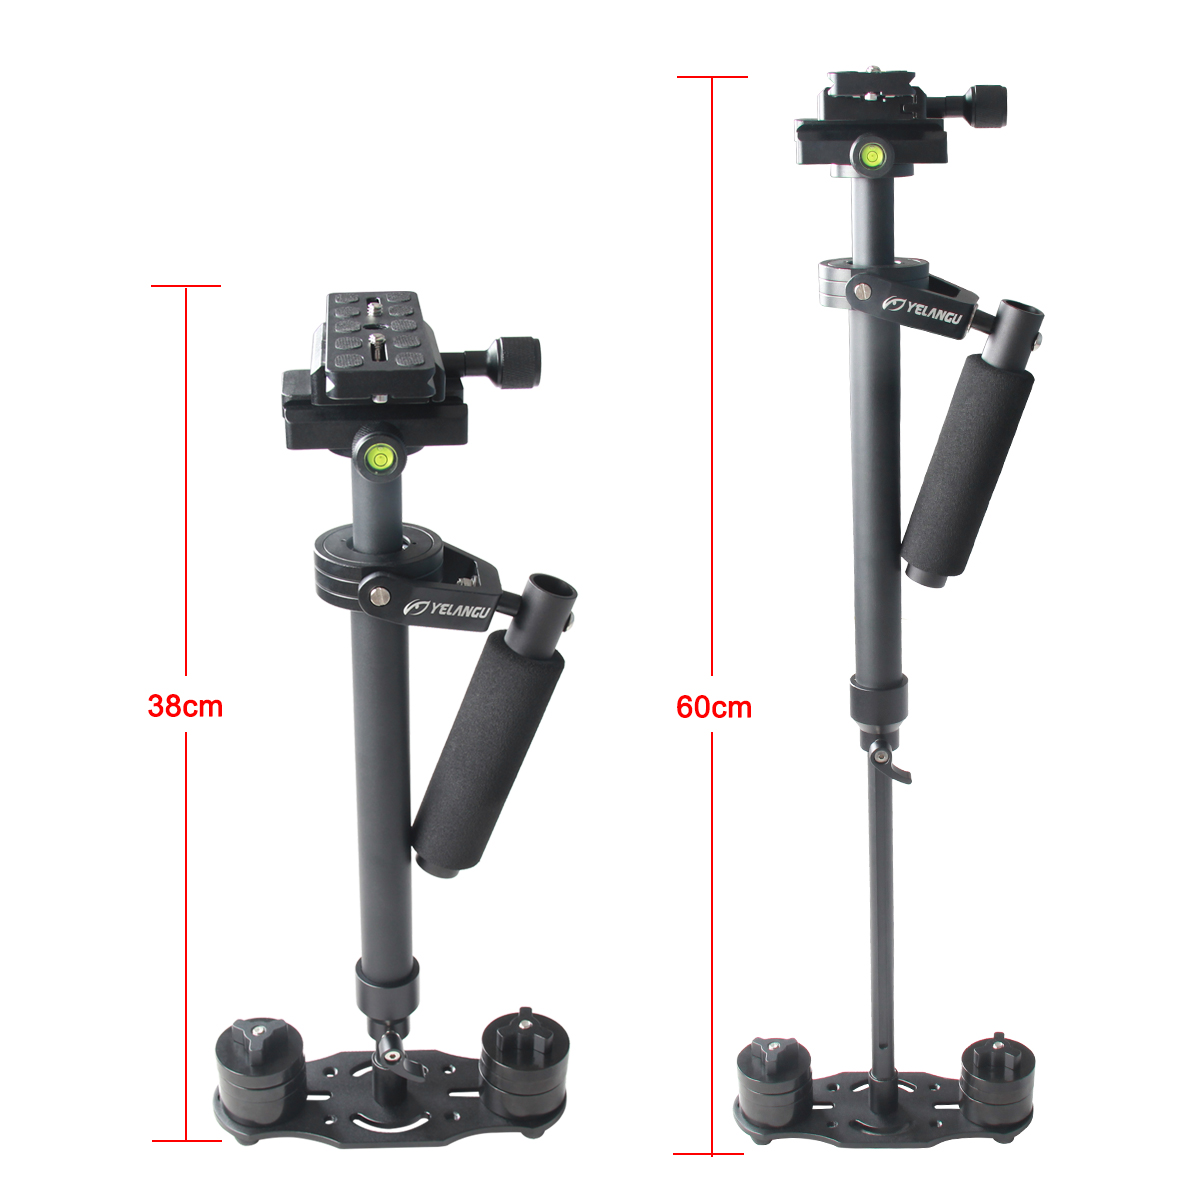 YELANGU 2016 Portable Video Camera Stabilizer S60N with 60cm Adjustable Aluminium Rods Support DSLR